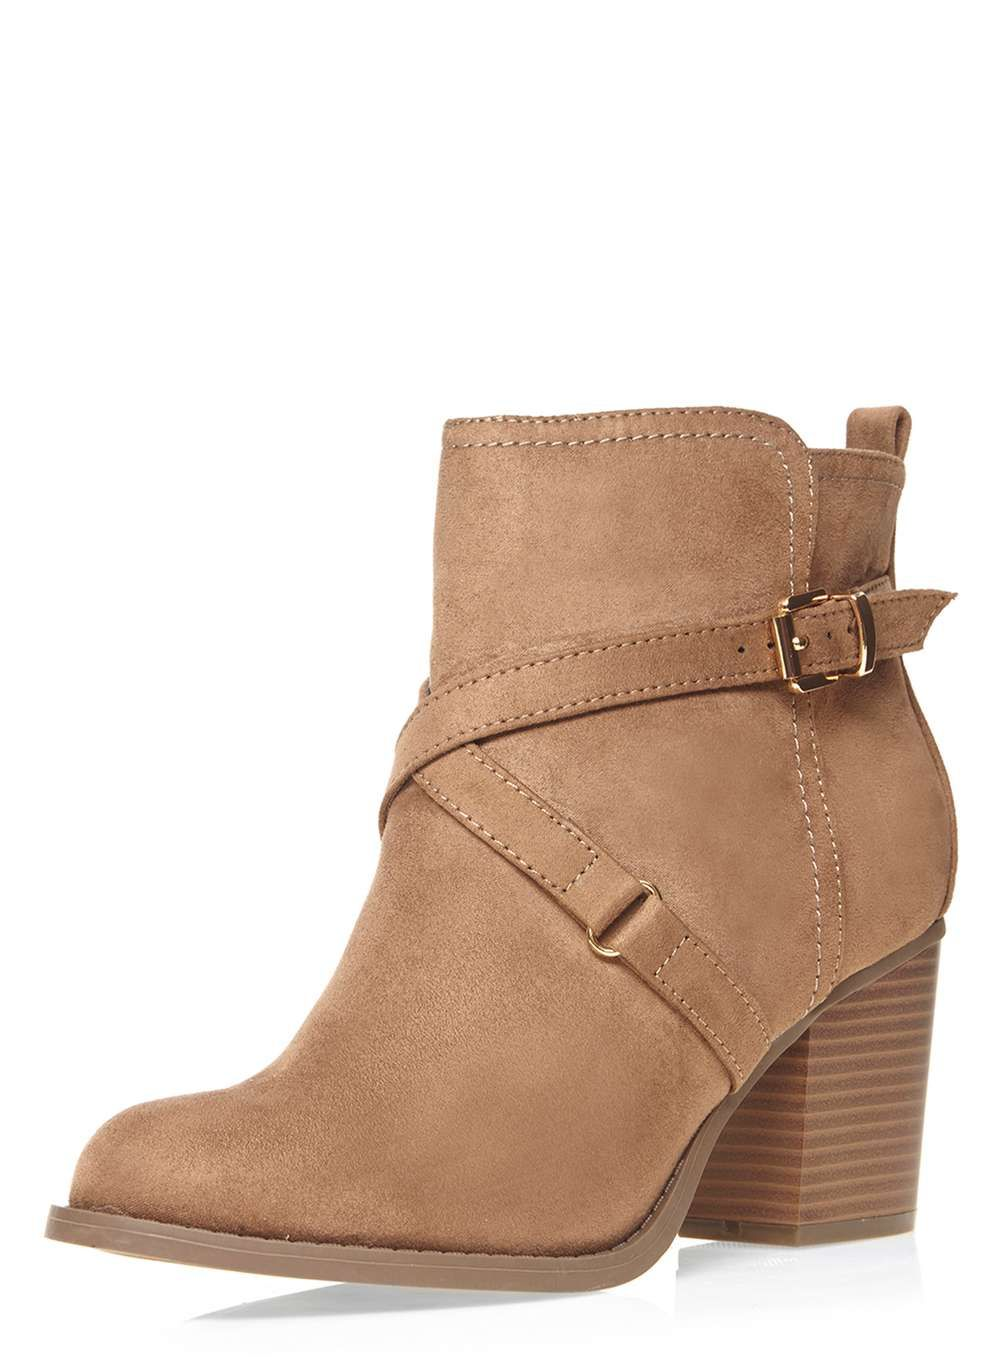 66771d64b89 Wide fit nude 'Wava' boots in 2019 | Outfits and Fashion Trends ...